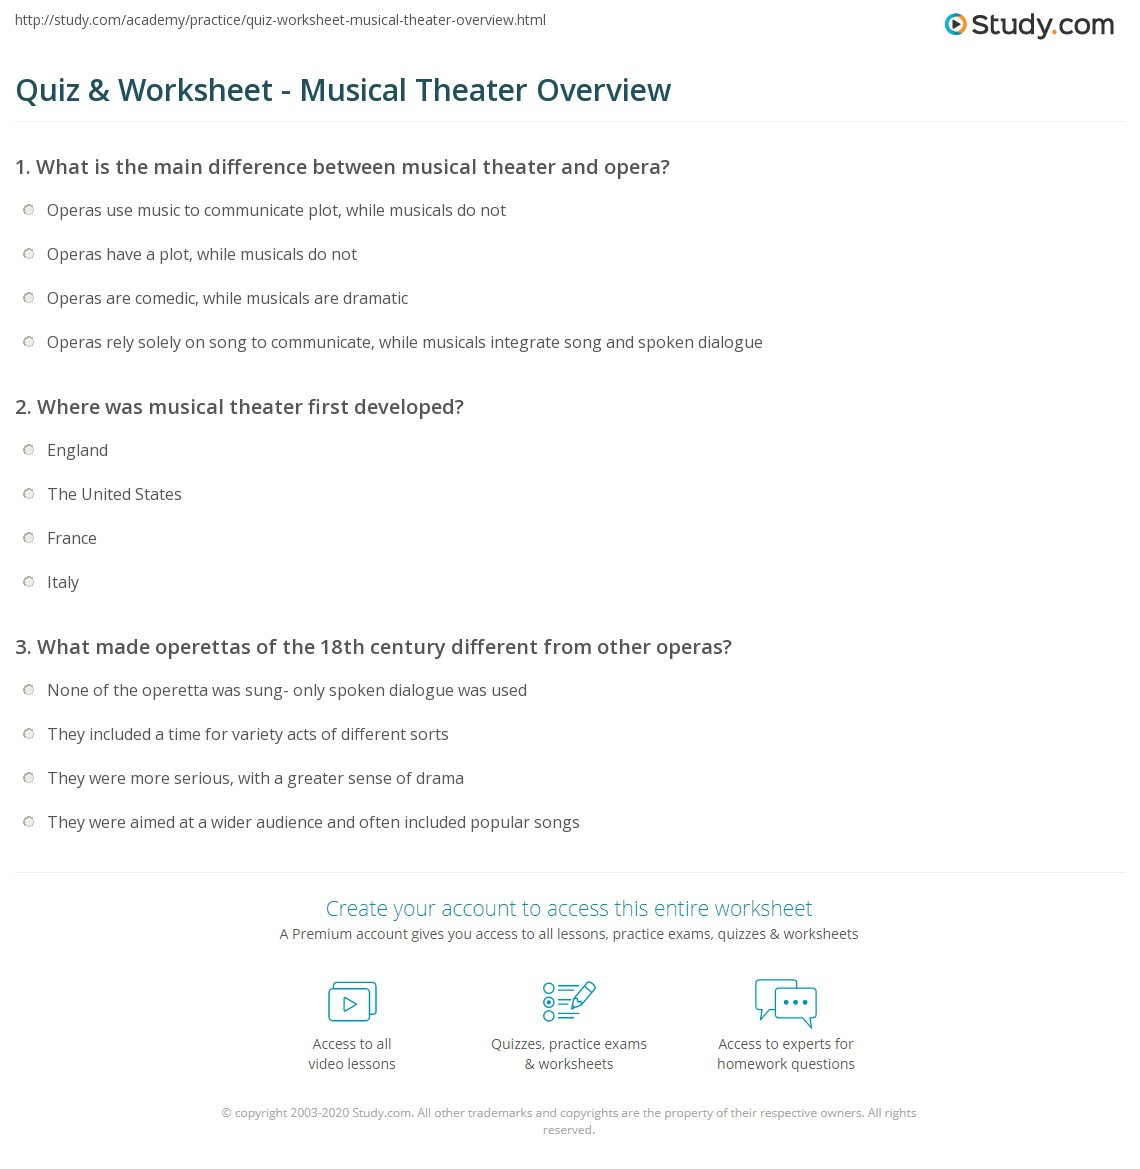 quiz worksheet musical theater overview study